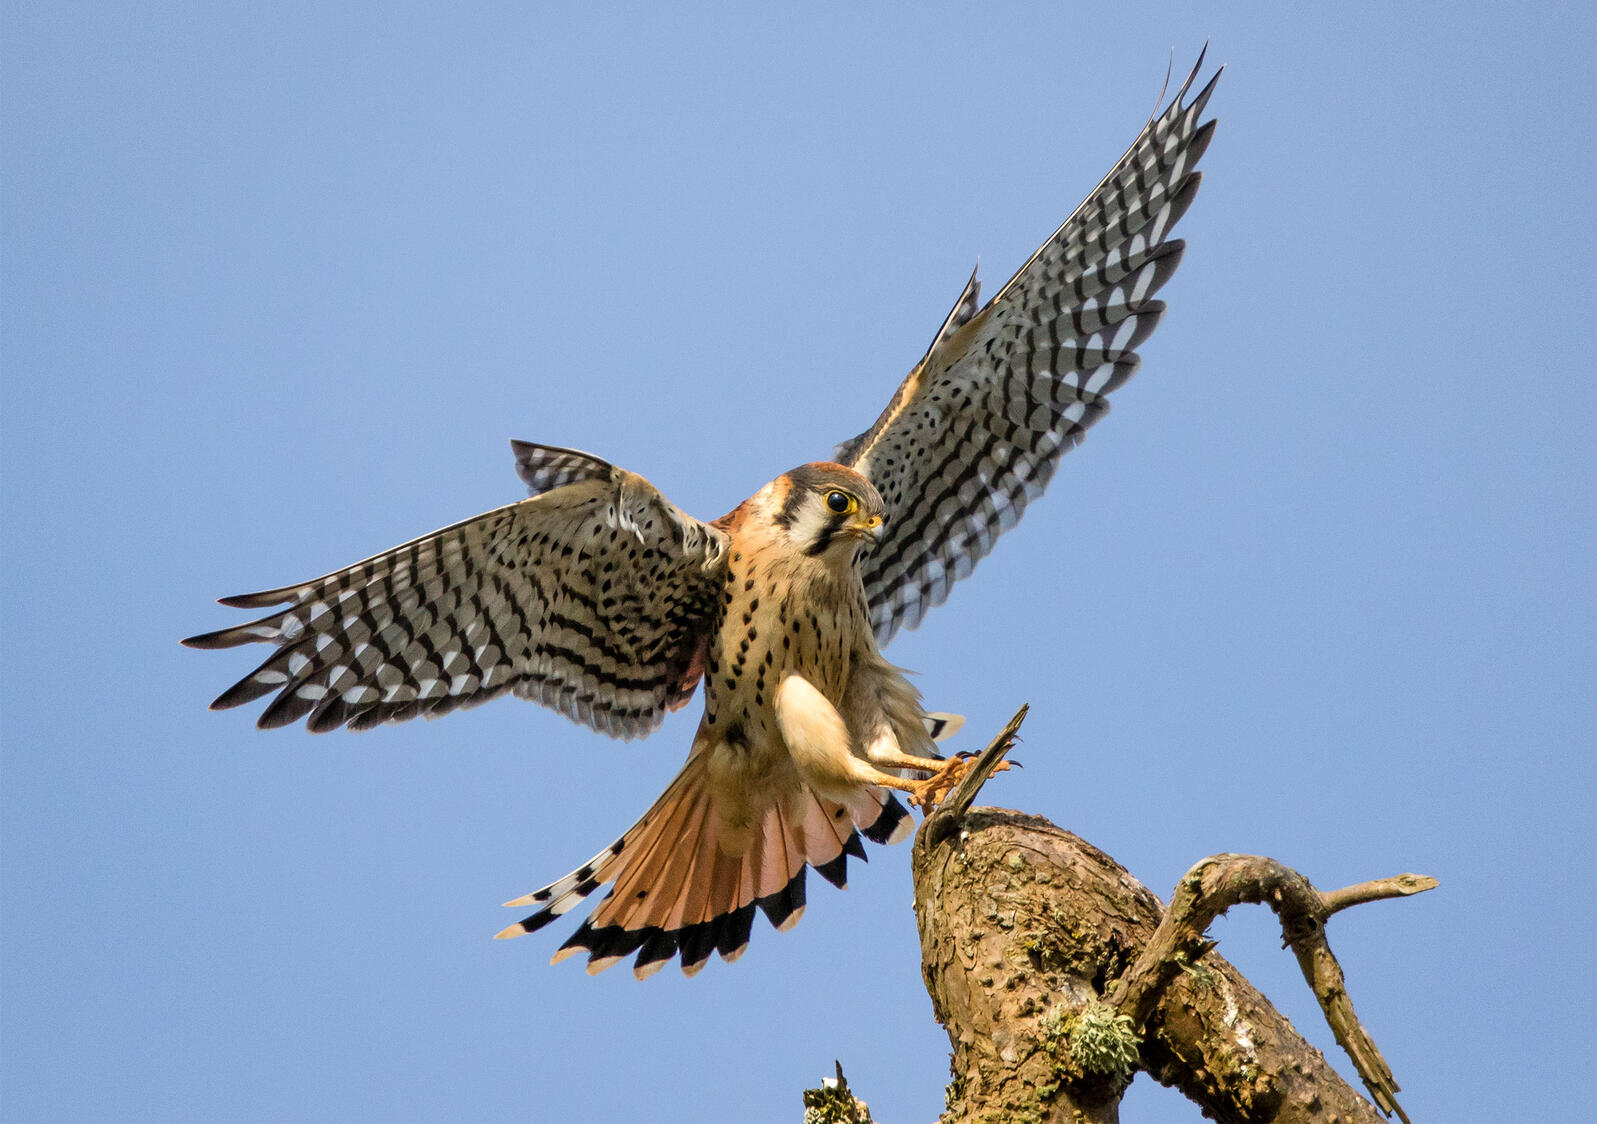 Photograph of an American Kestrel landing on a branch. The Migratory Bird Treaty Act protects more than 1,000 species of birds, including American Kestrels. Sylvia Hunt/Audubon Photography Awards